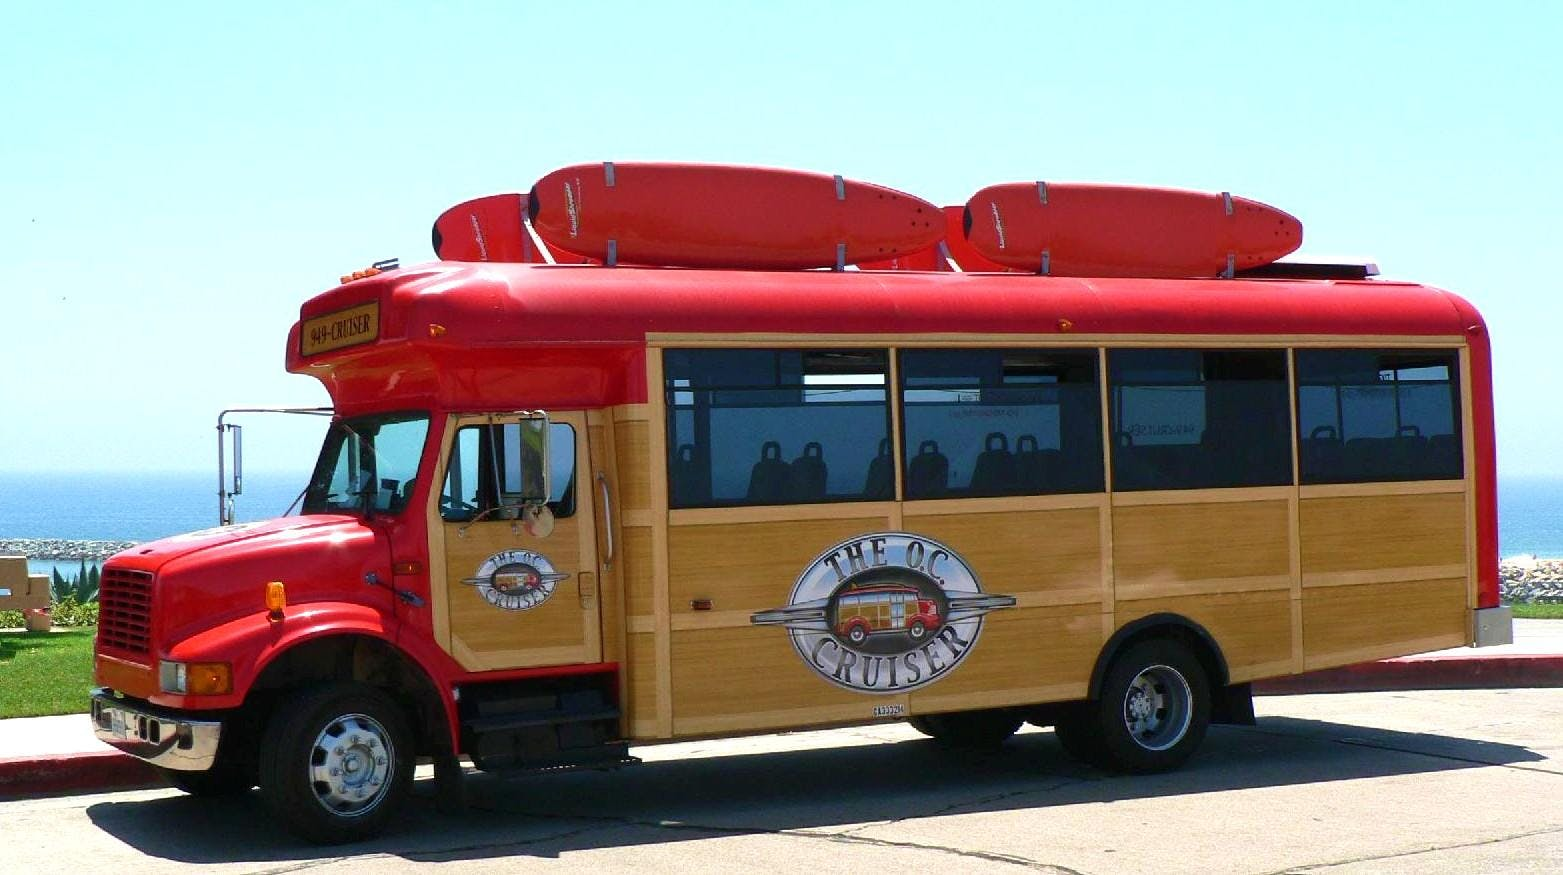 OC beach bus